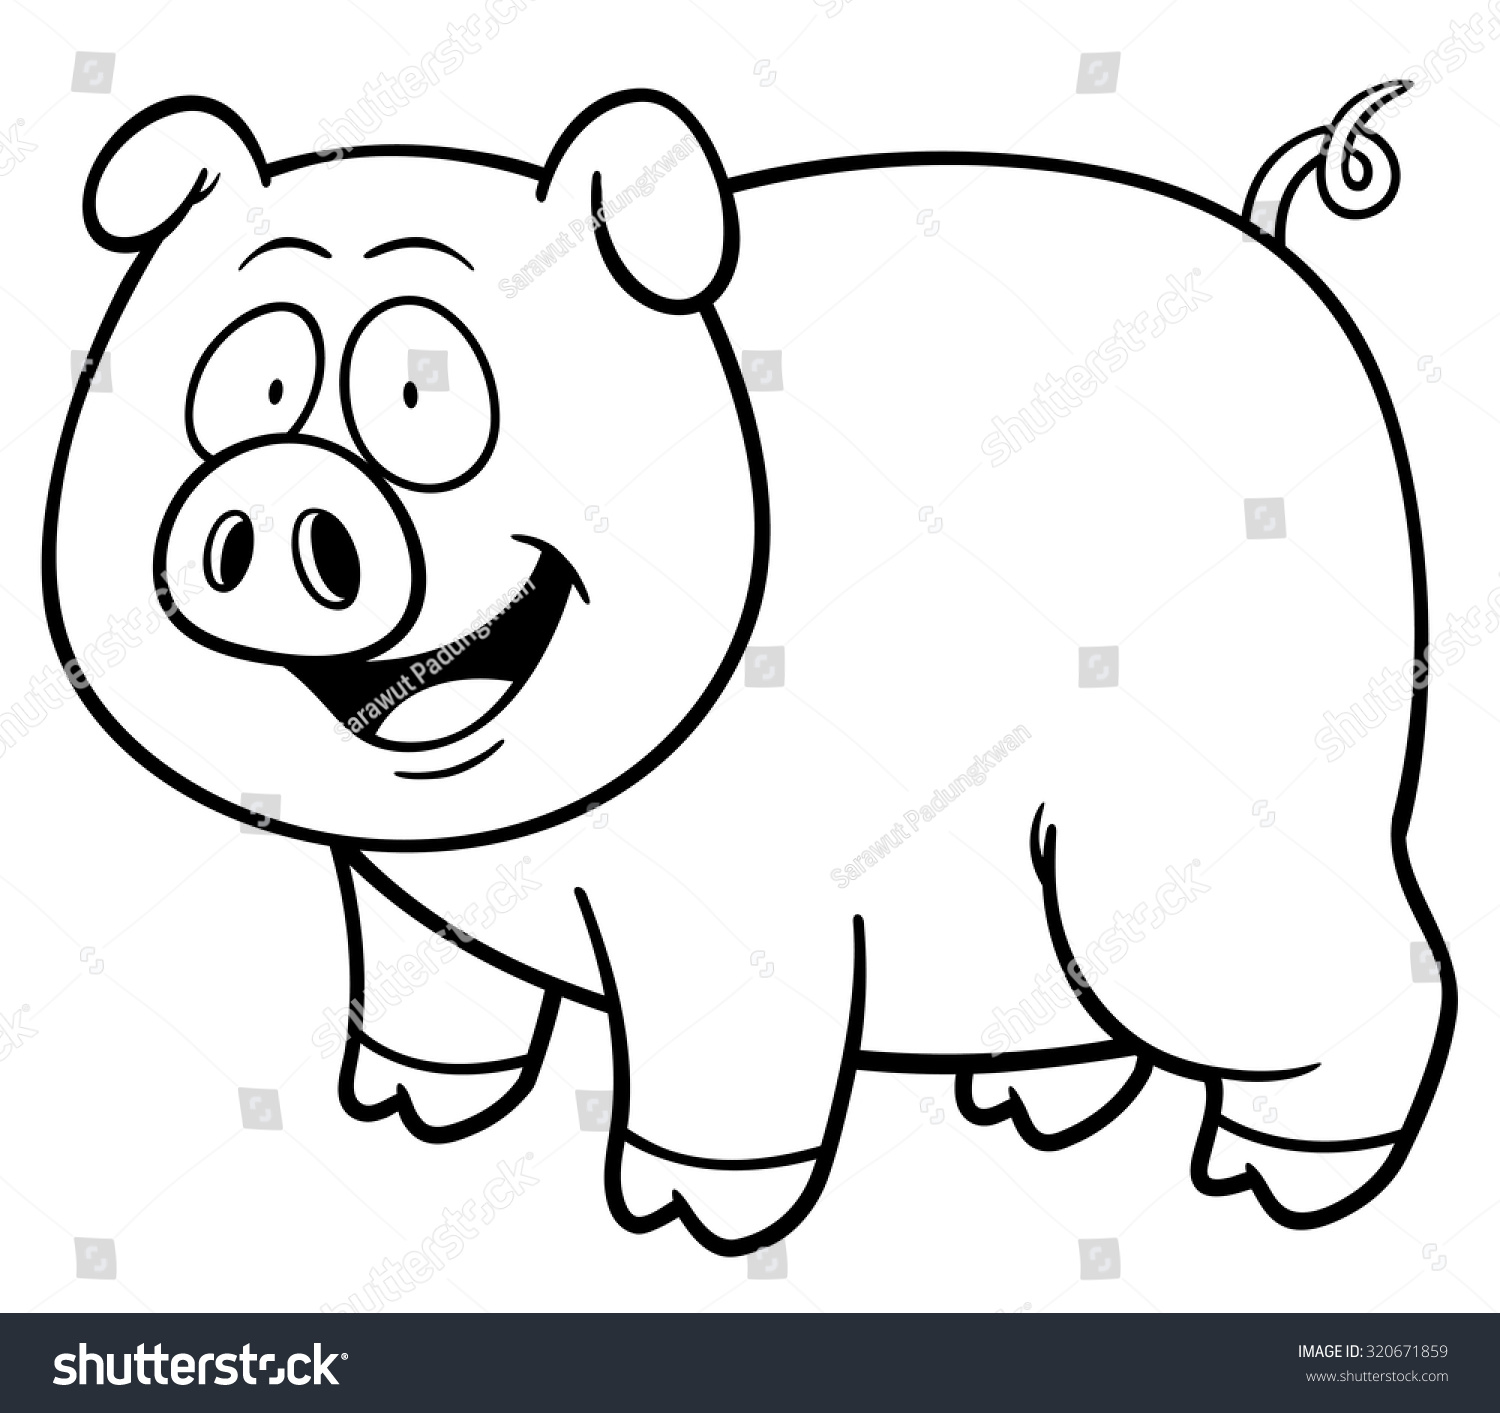 Vector Illustration Cartoon Pig Coloring Book Stock Vector ...